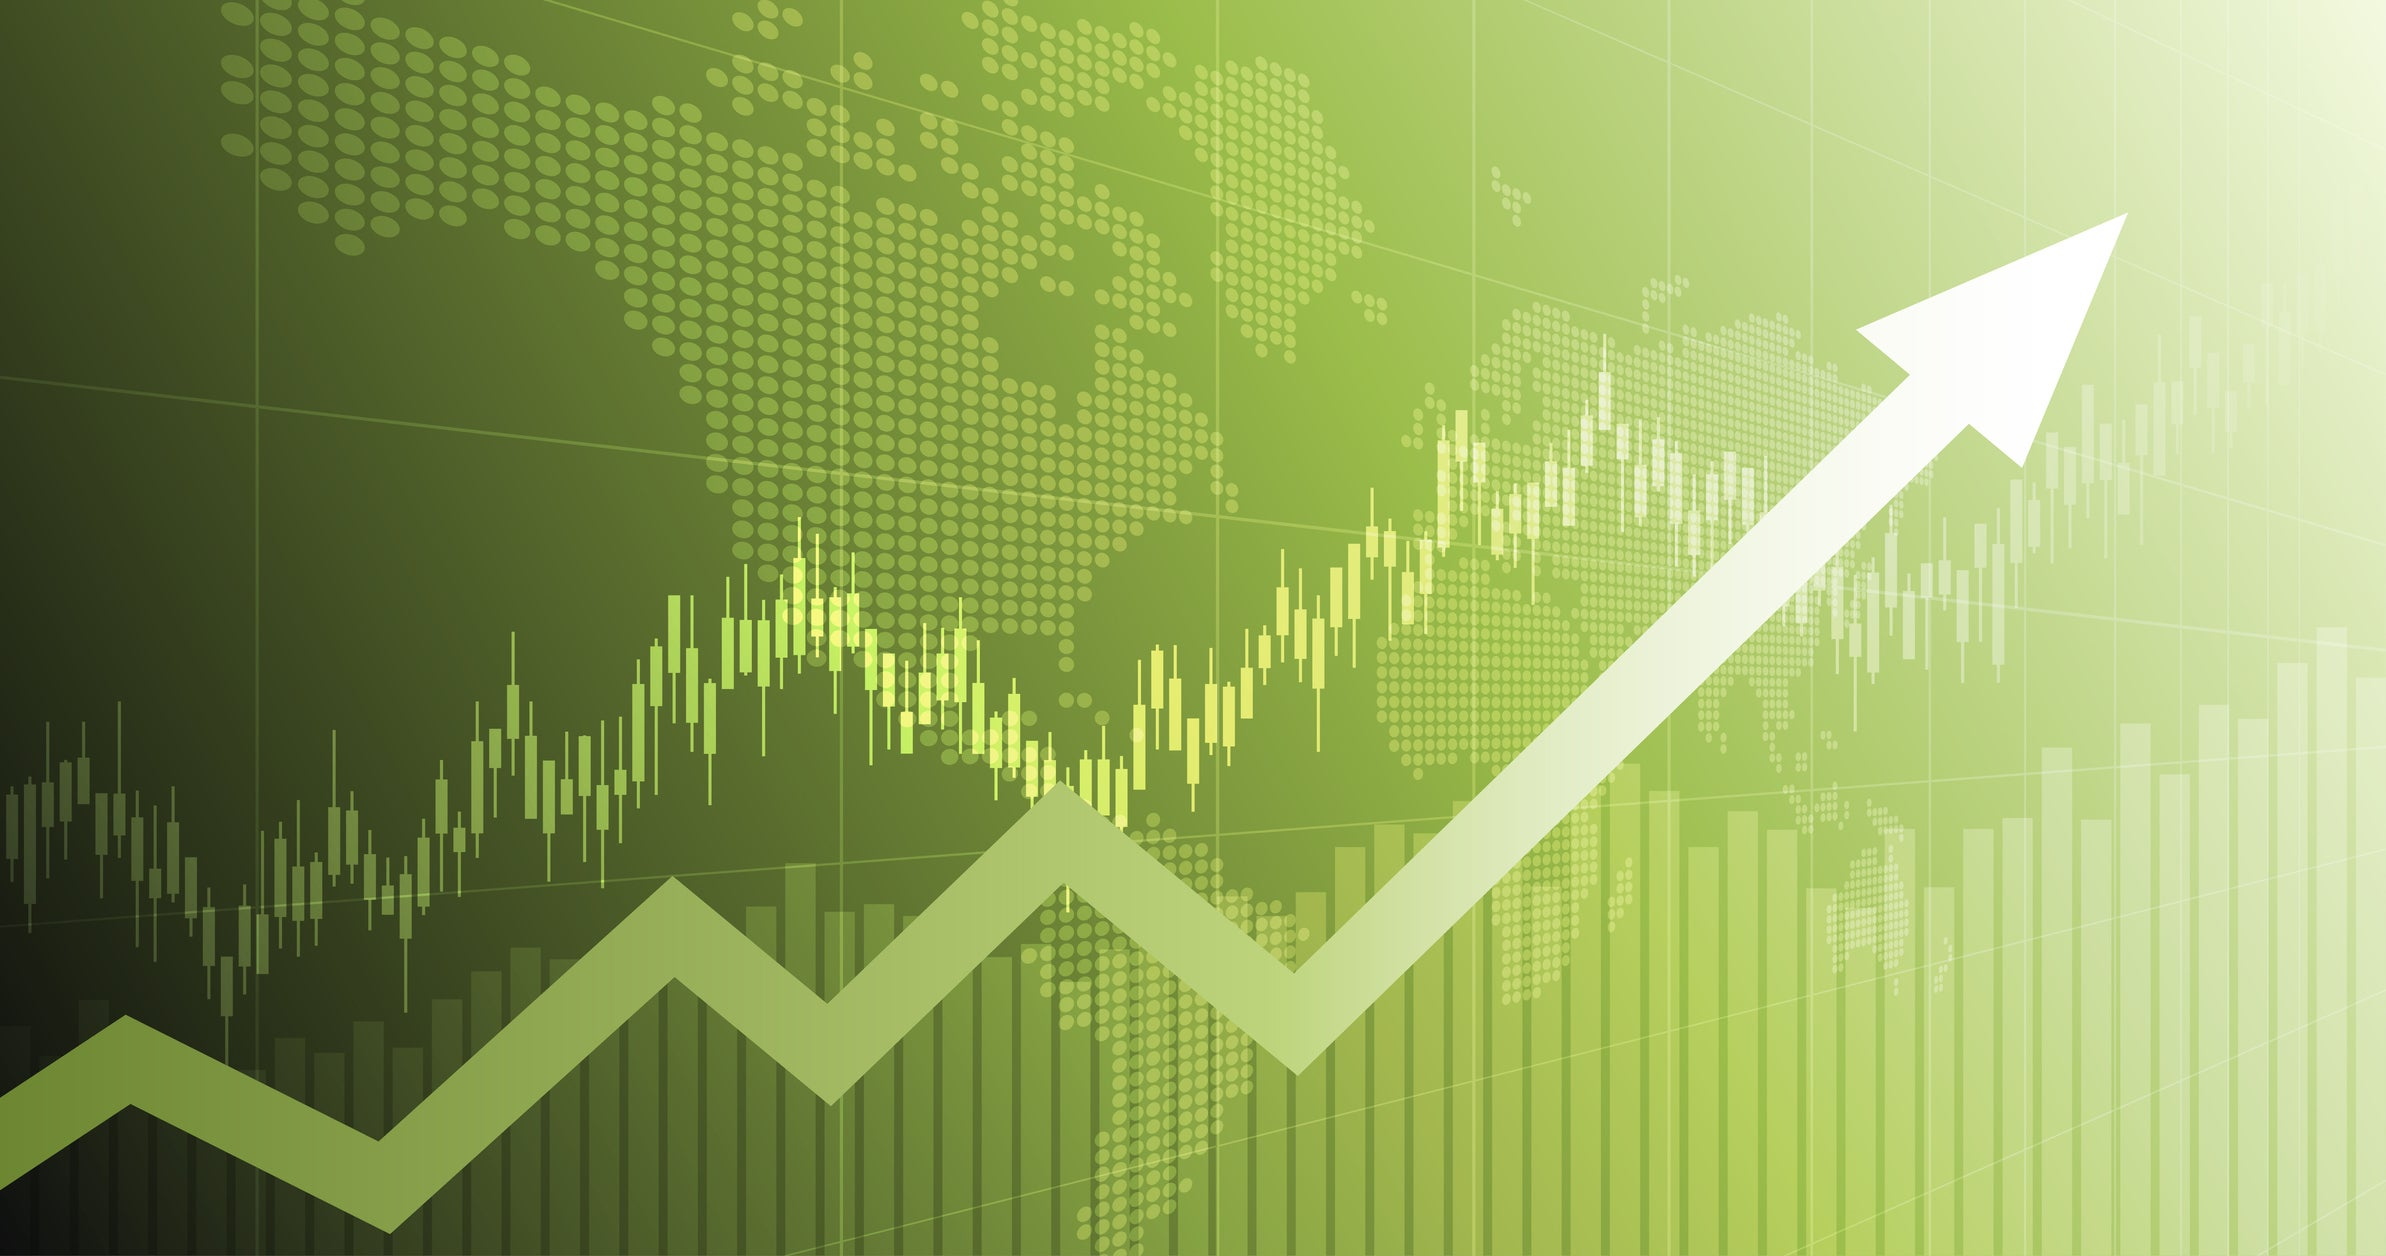 How much far the stock omeg moves up and fall down?